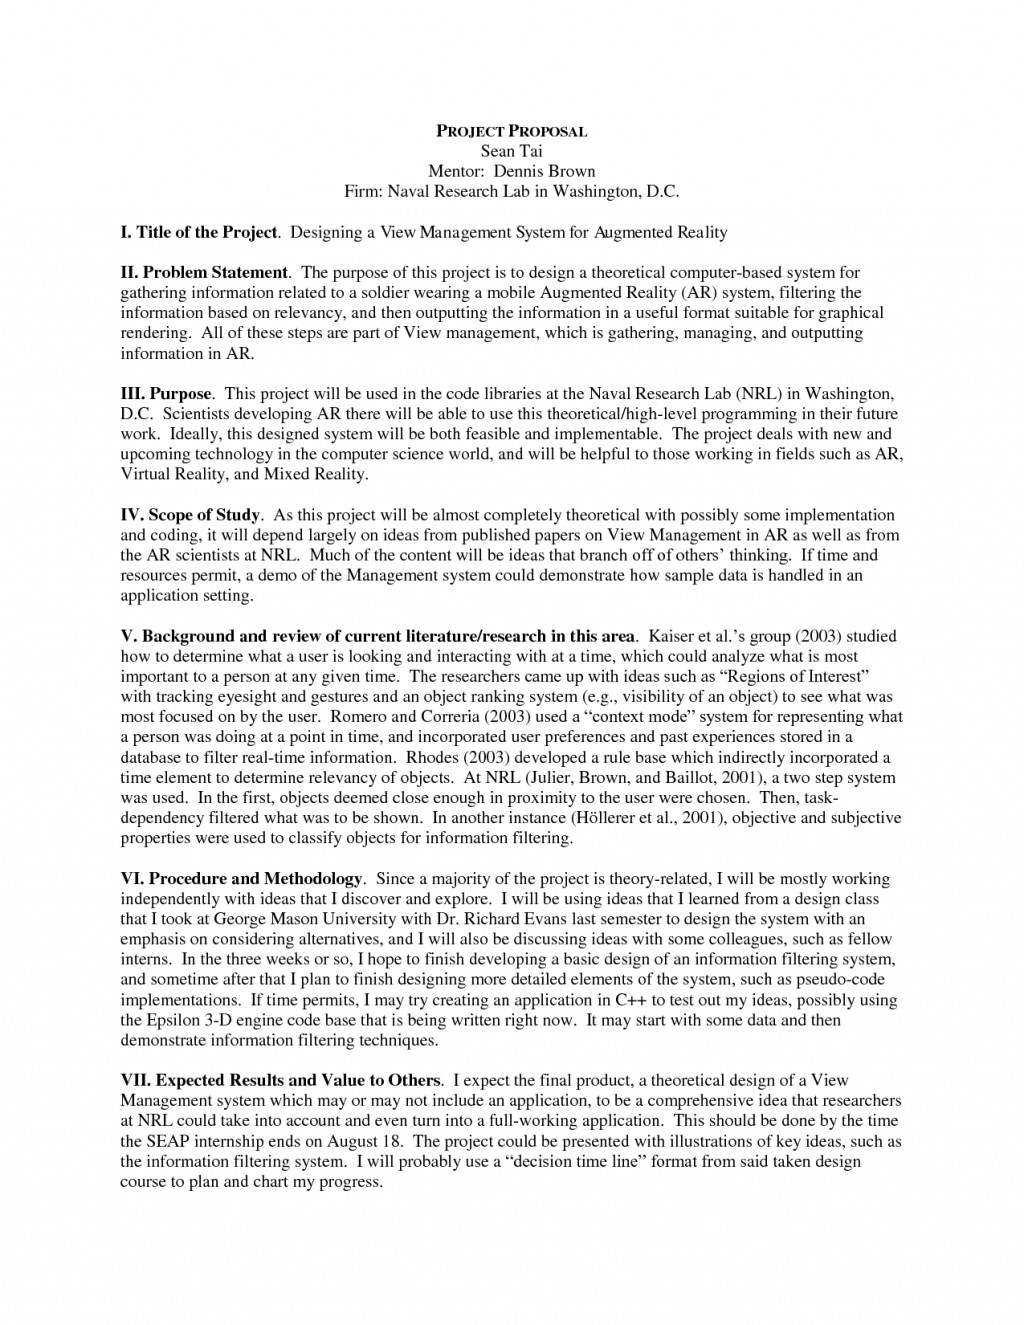 003 Research Paper Literature Review Apa Style 392631 Dreaded Format Sample Large